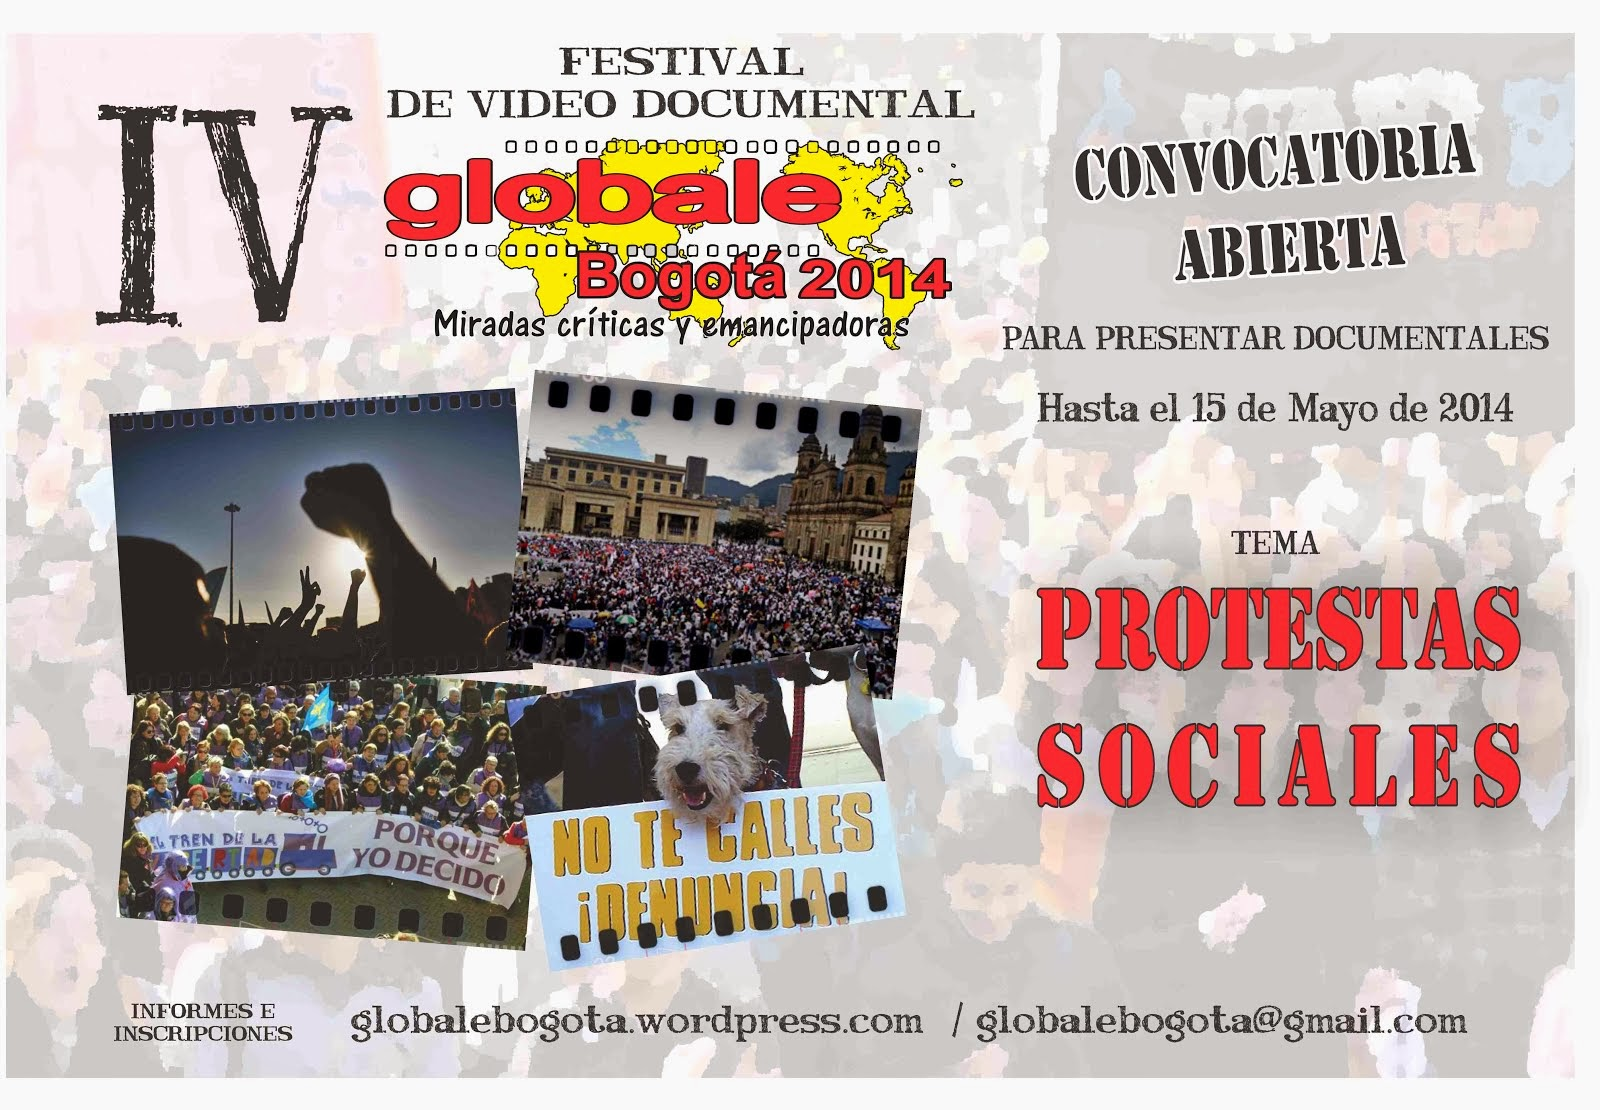 FESTIVAL DE VIDEO DOCUMENTAL